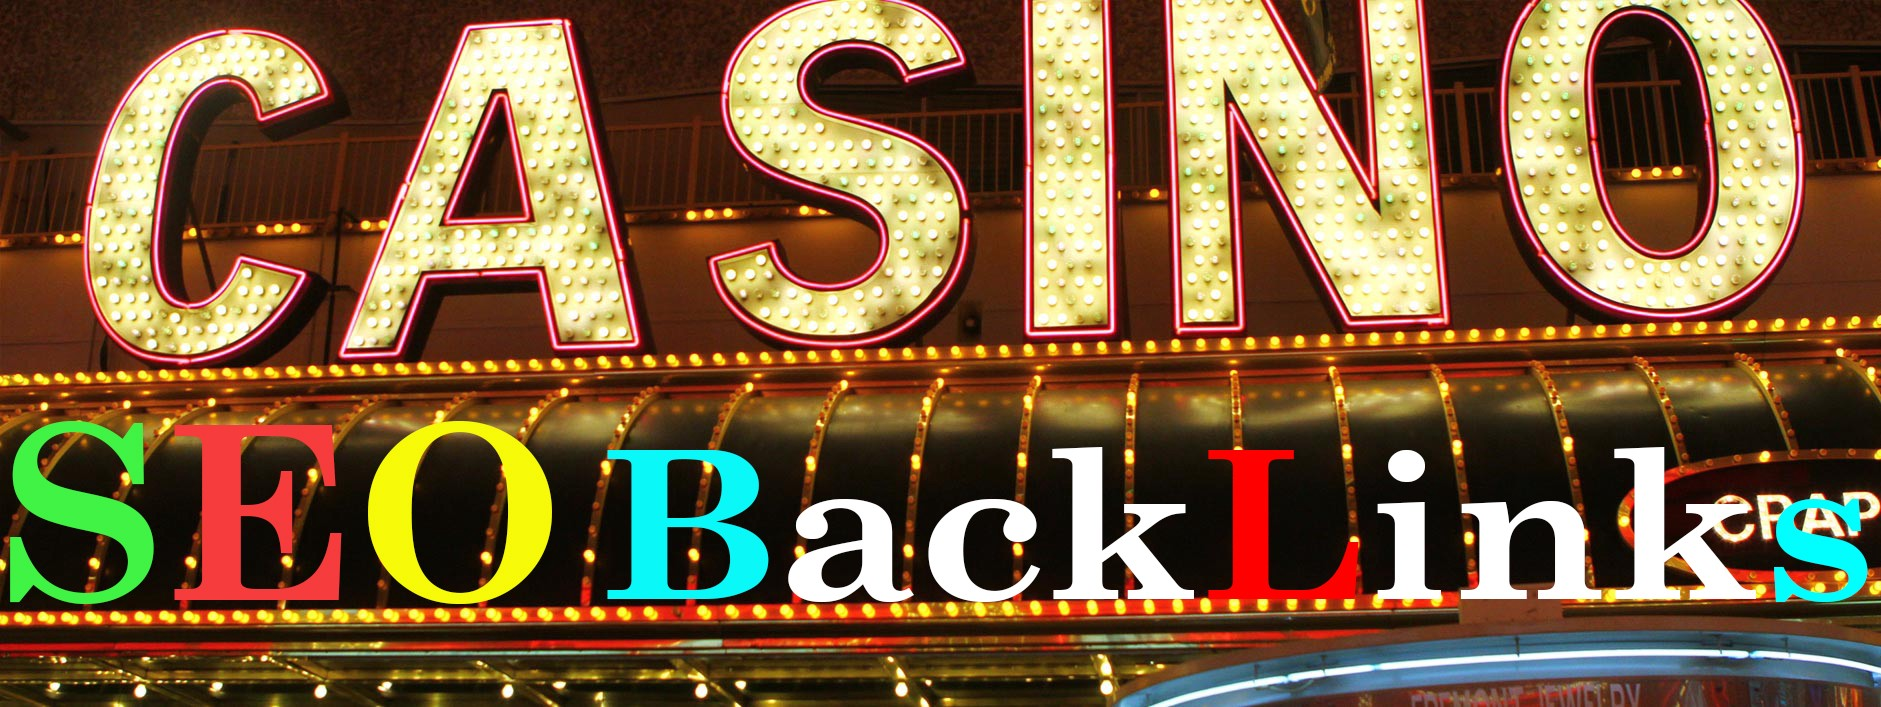 GET 150+PRIMIUM Casino PBN Backlink homepage web 2.0 with HIGH DA/PA/CF/TF WITH UNIQUE WEBSITE